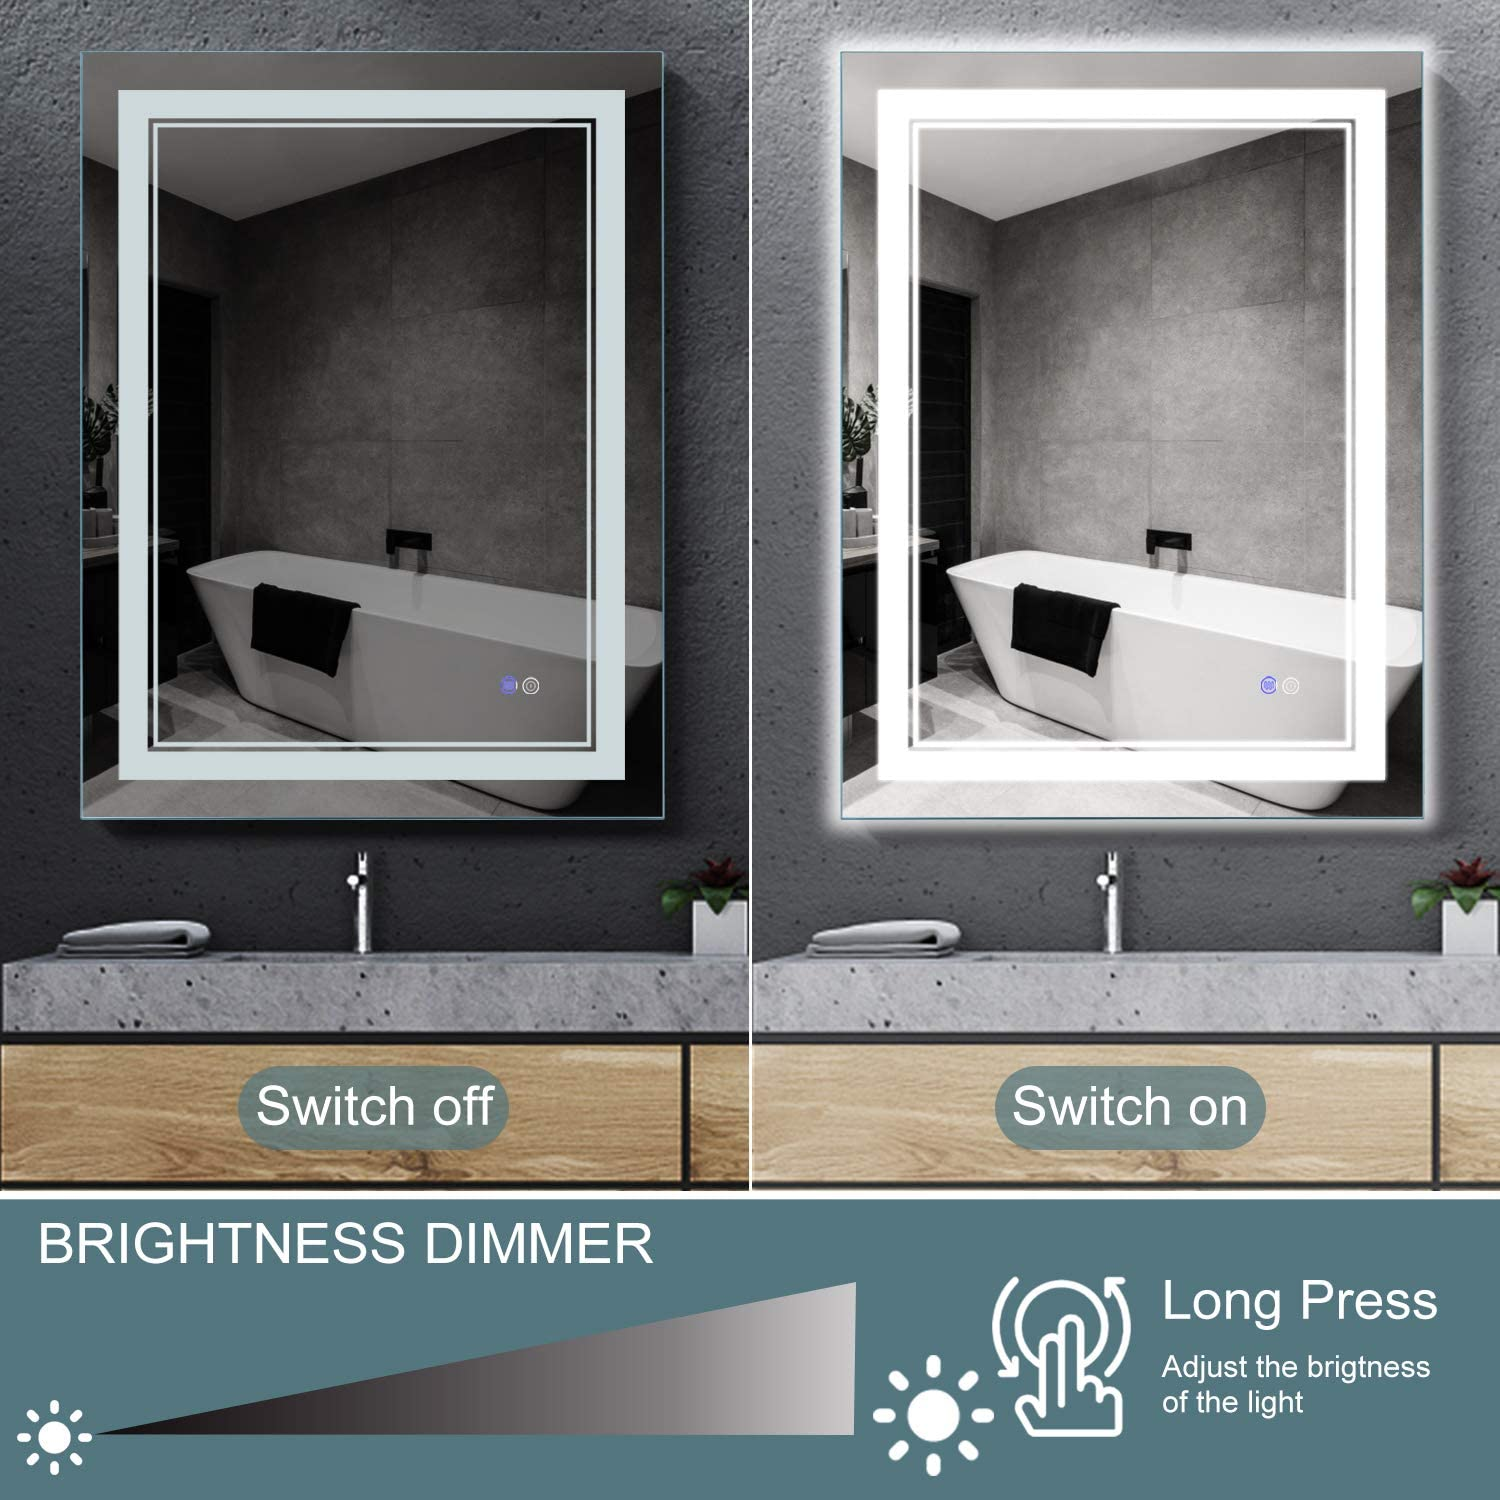 MAISTECH Bathroom Mirror with LED Lights Dimmable Anti-Fog Backlit Wall Mounted Makeup Vanity Mirror with Lights Horizontal/Vertical (32 x 24): Furniture & Decor